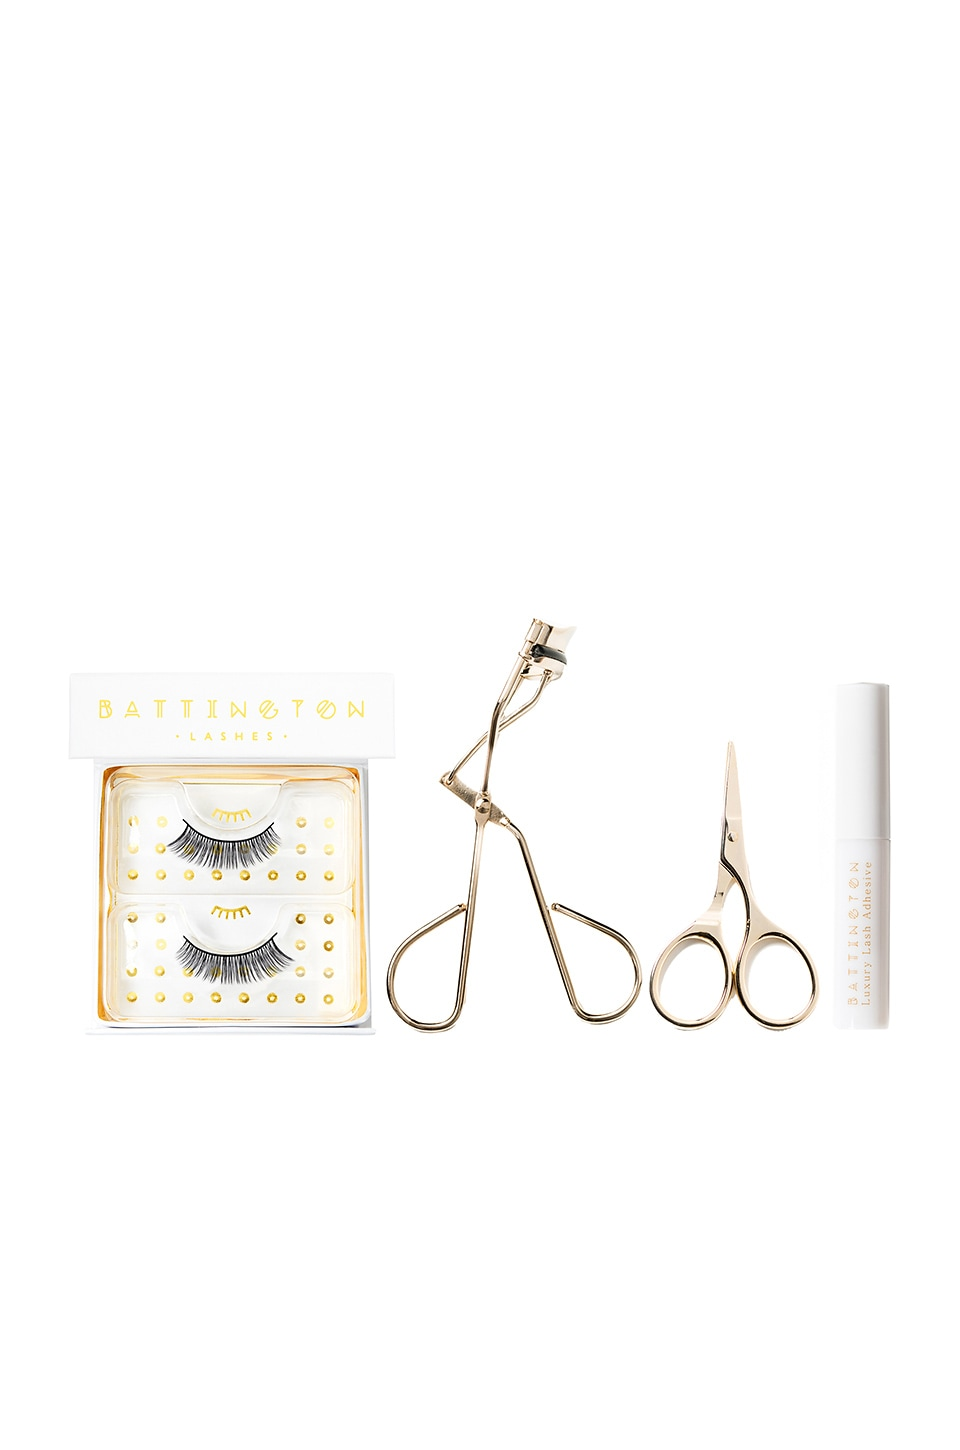 Battington Lashes KIT DE PESTAÑAS POSTIZAS KENNEDY